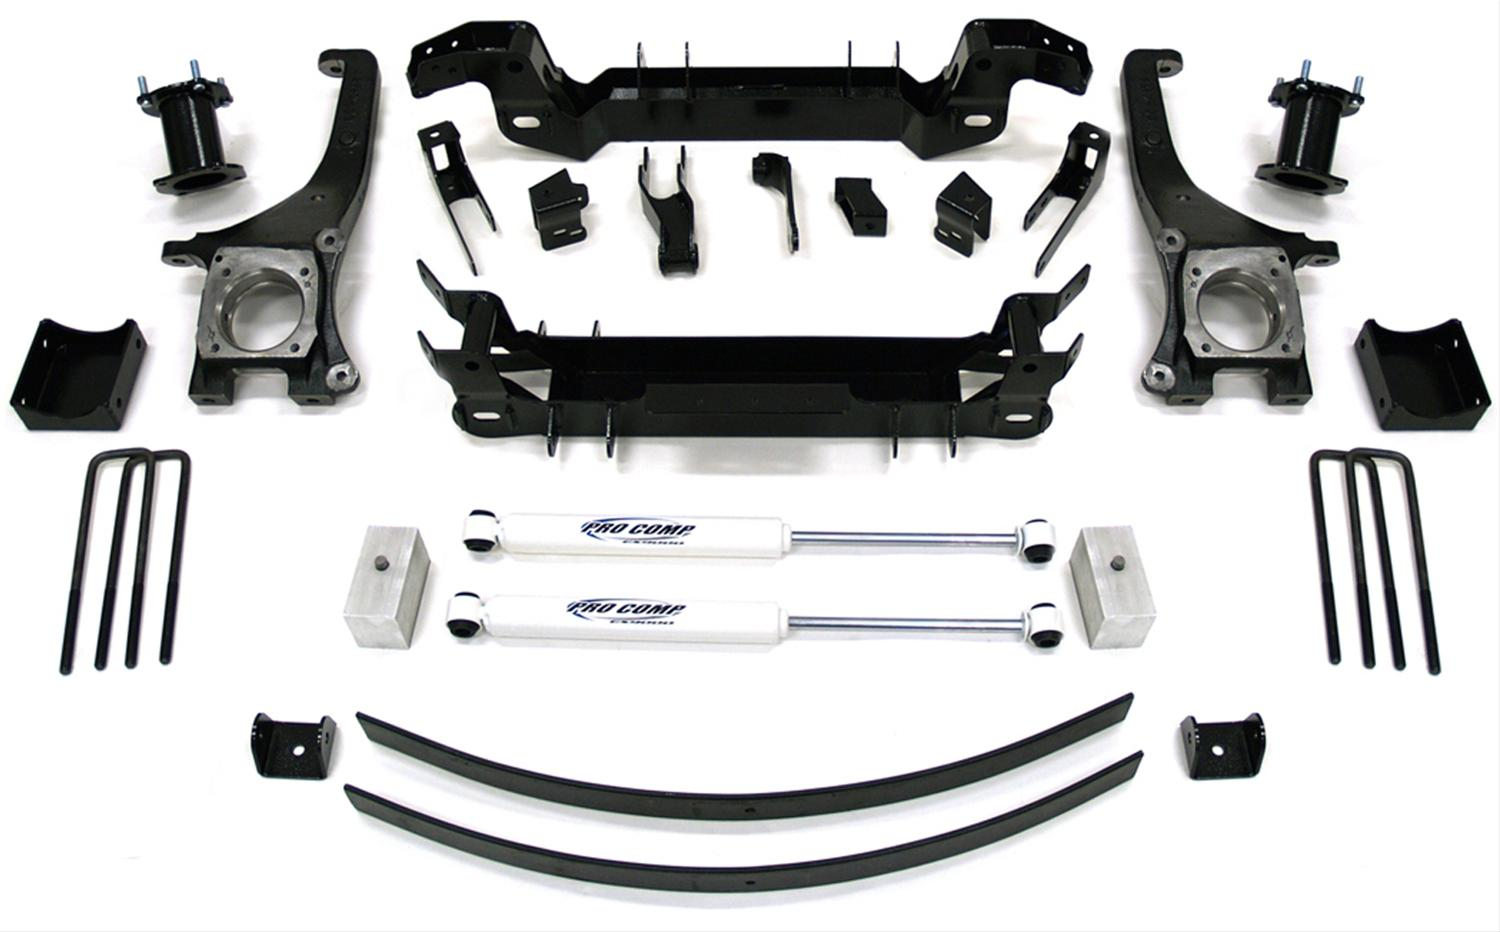 Pro Comp 4 Inch Lift Kit With ES9000 Shocks